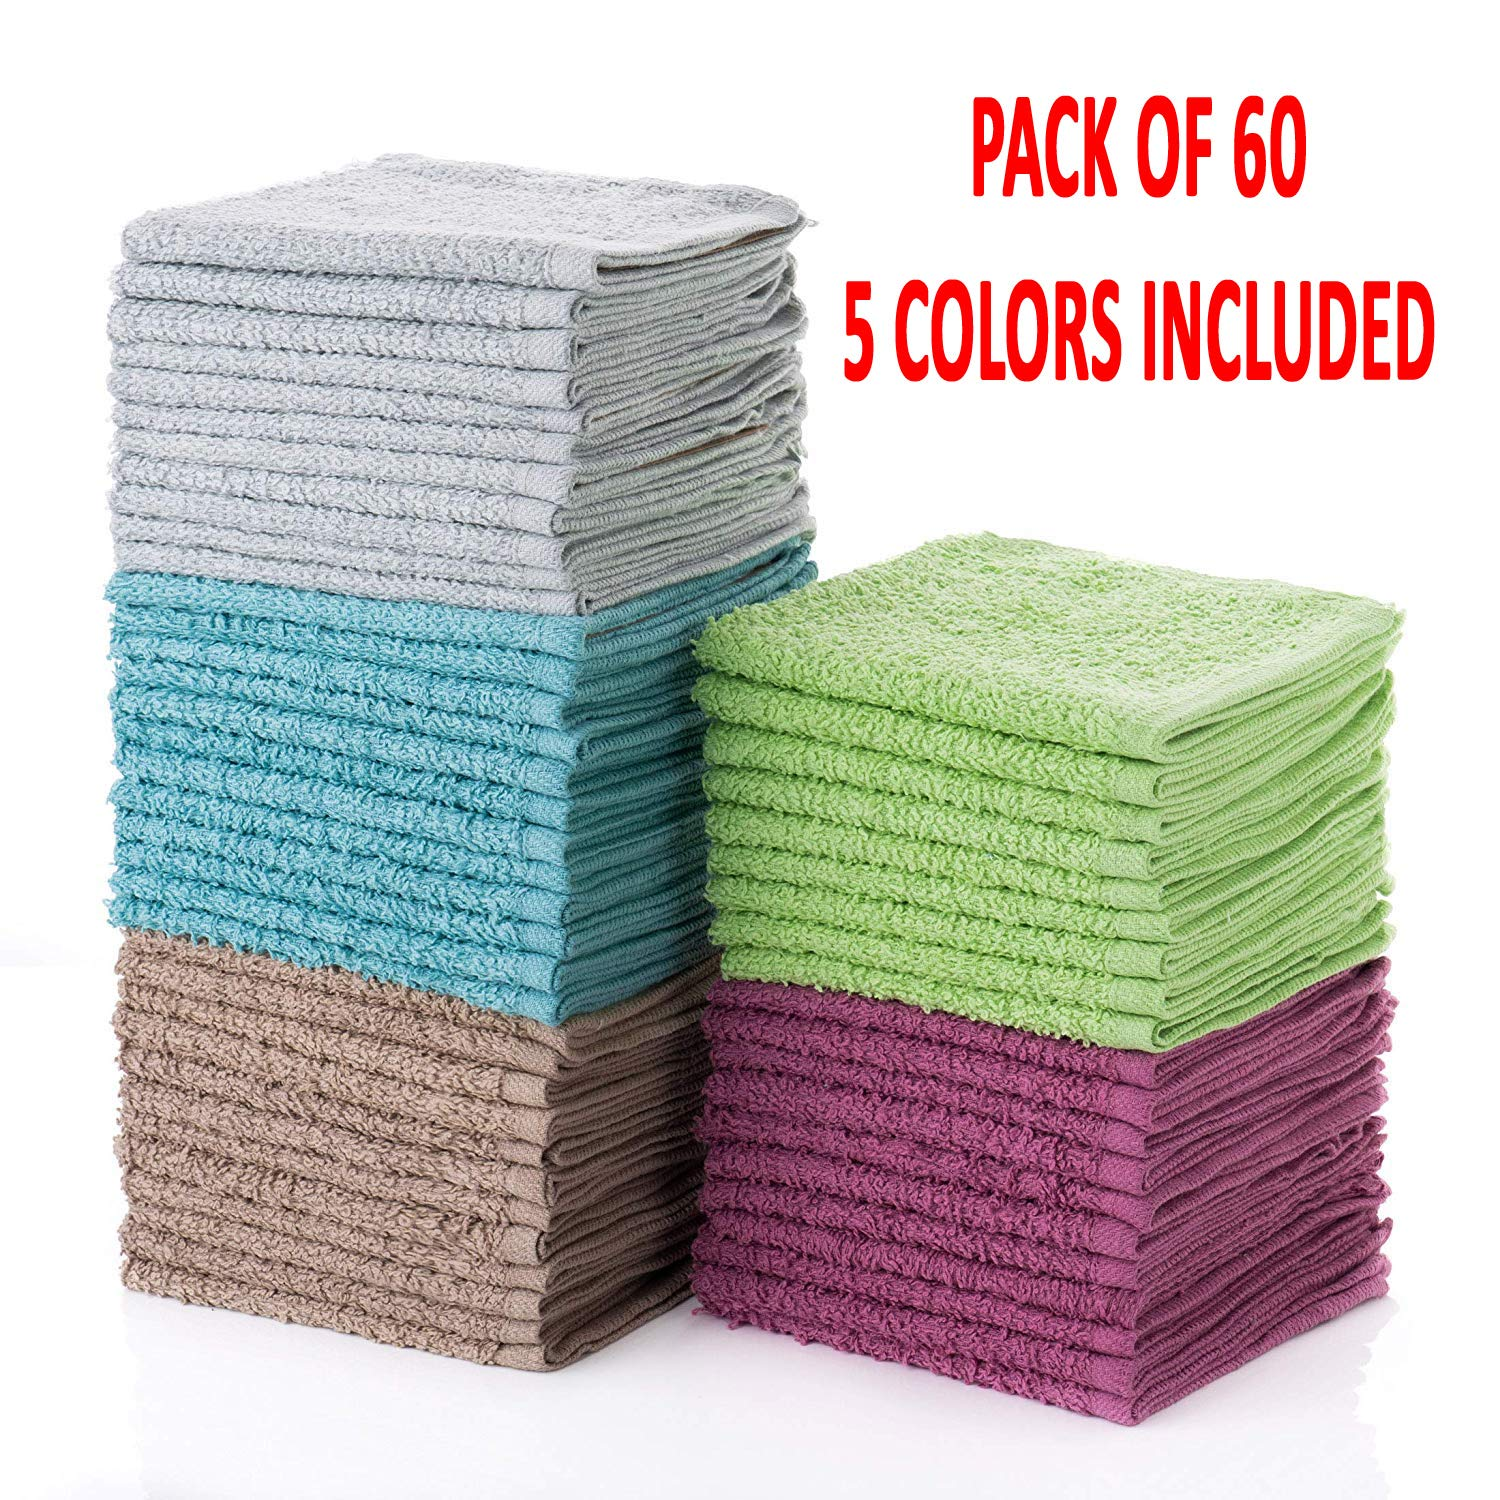 Simpli-Magic 79148 Cotton Washcloths, Multi Color, 12''x12'', 60 Pack, Size 12'' x 12'', Taupe/Turquoise/Lime Green/Powder Blue/Raspberry,